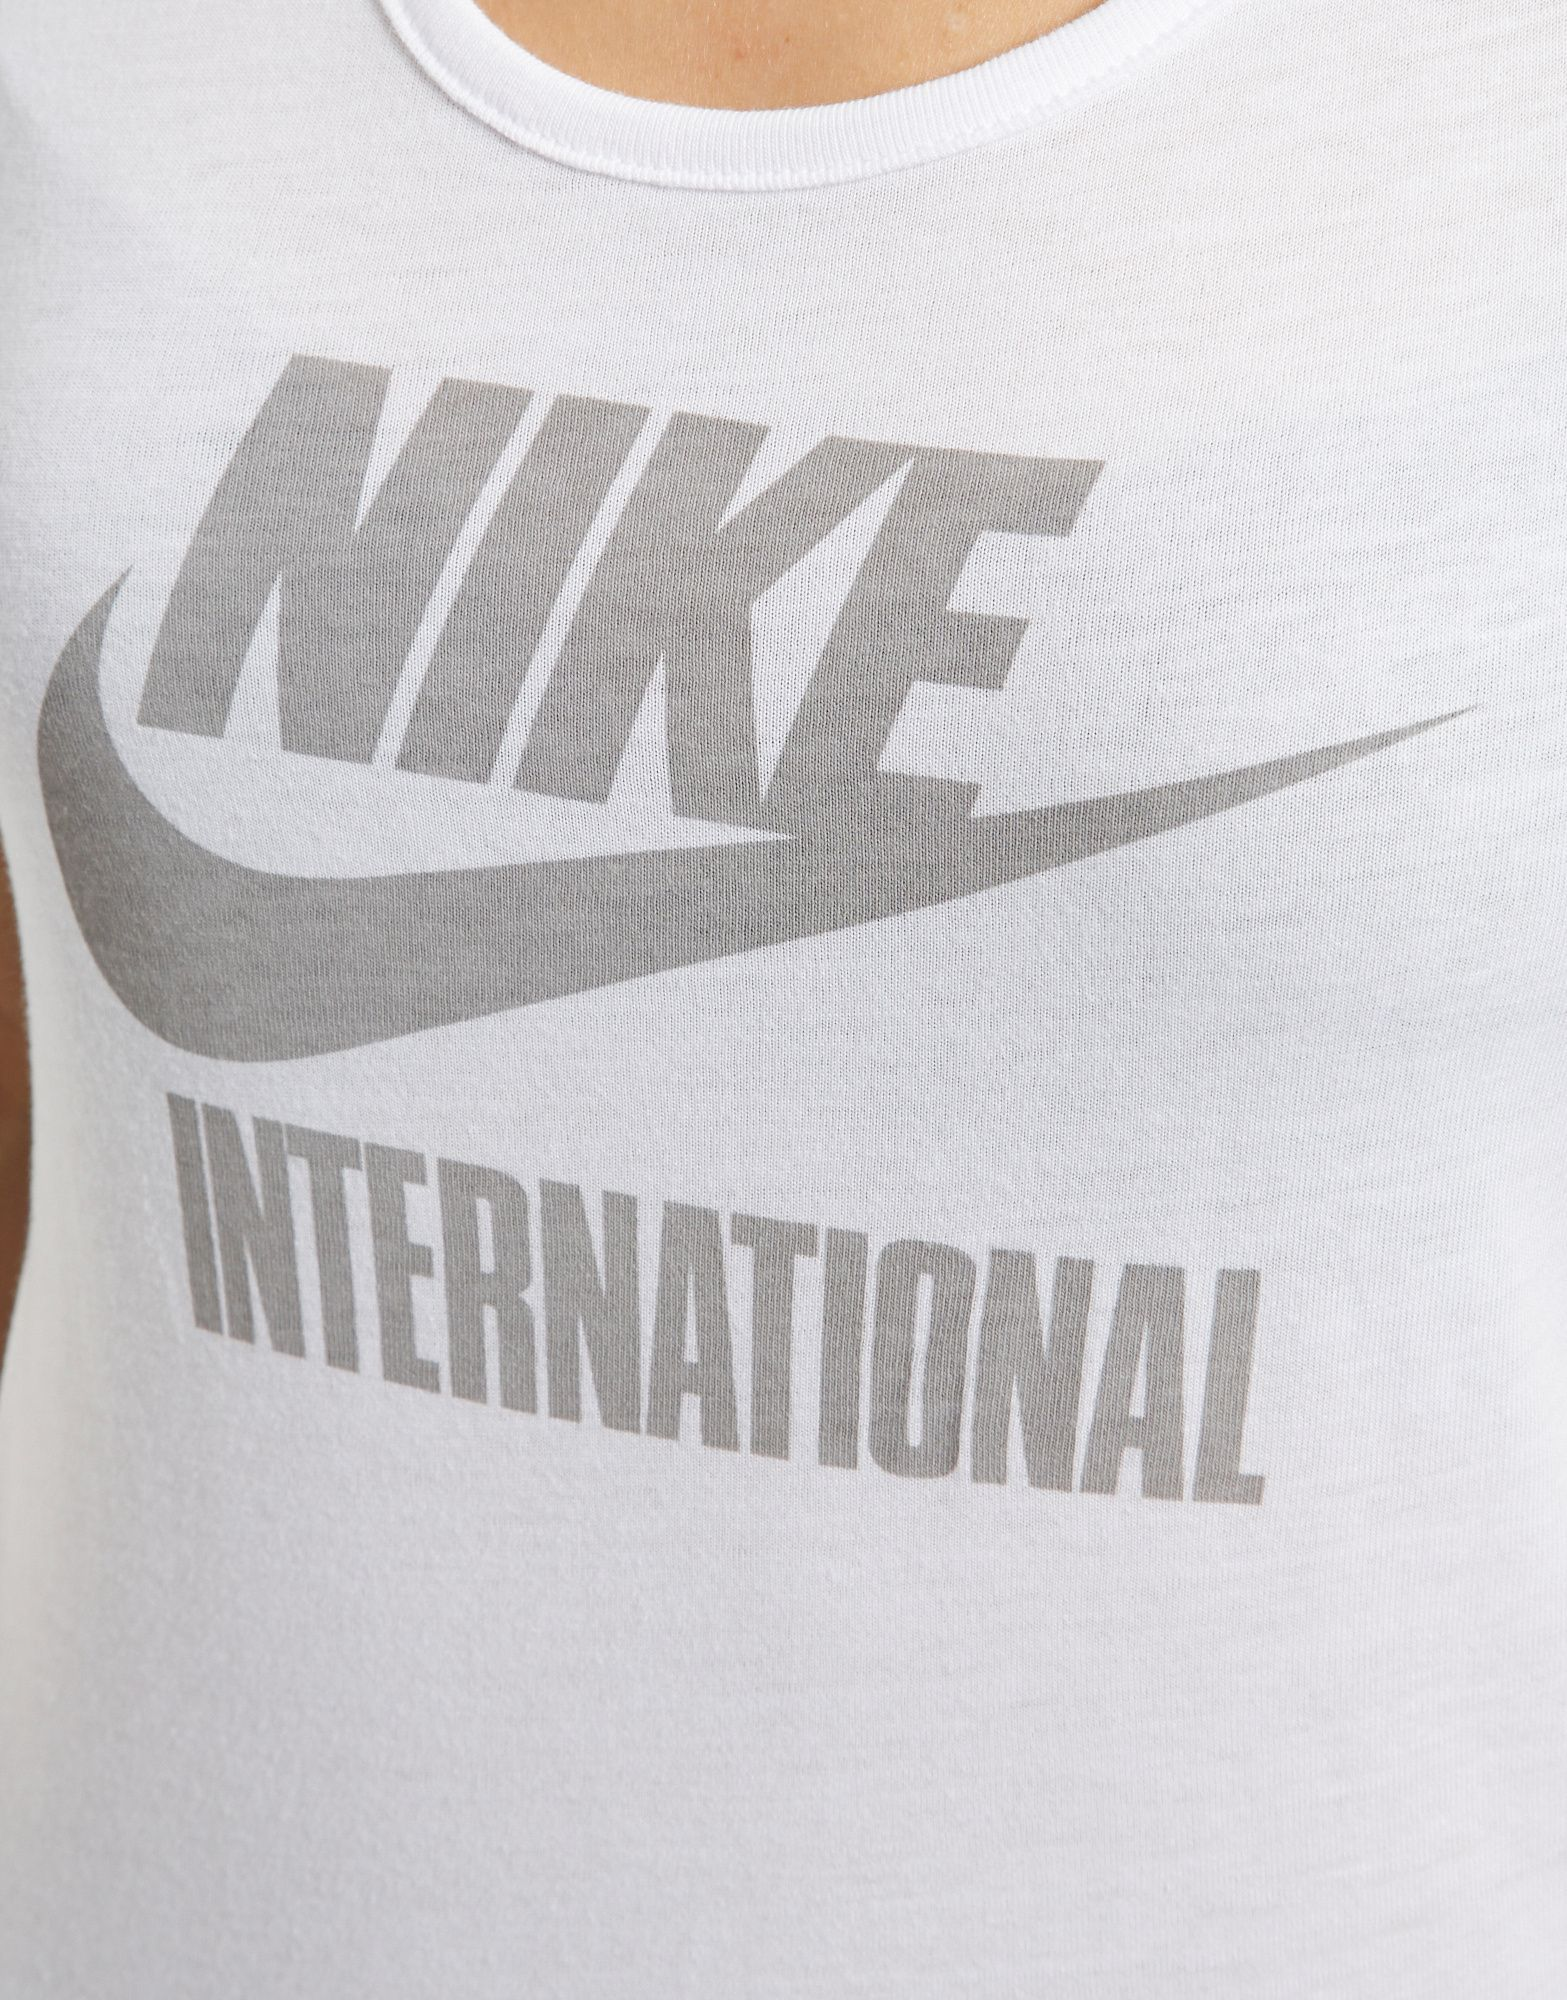 Nike International Air Print Tank Top